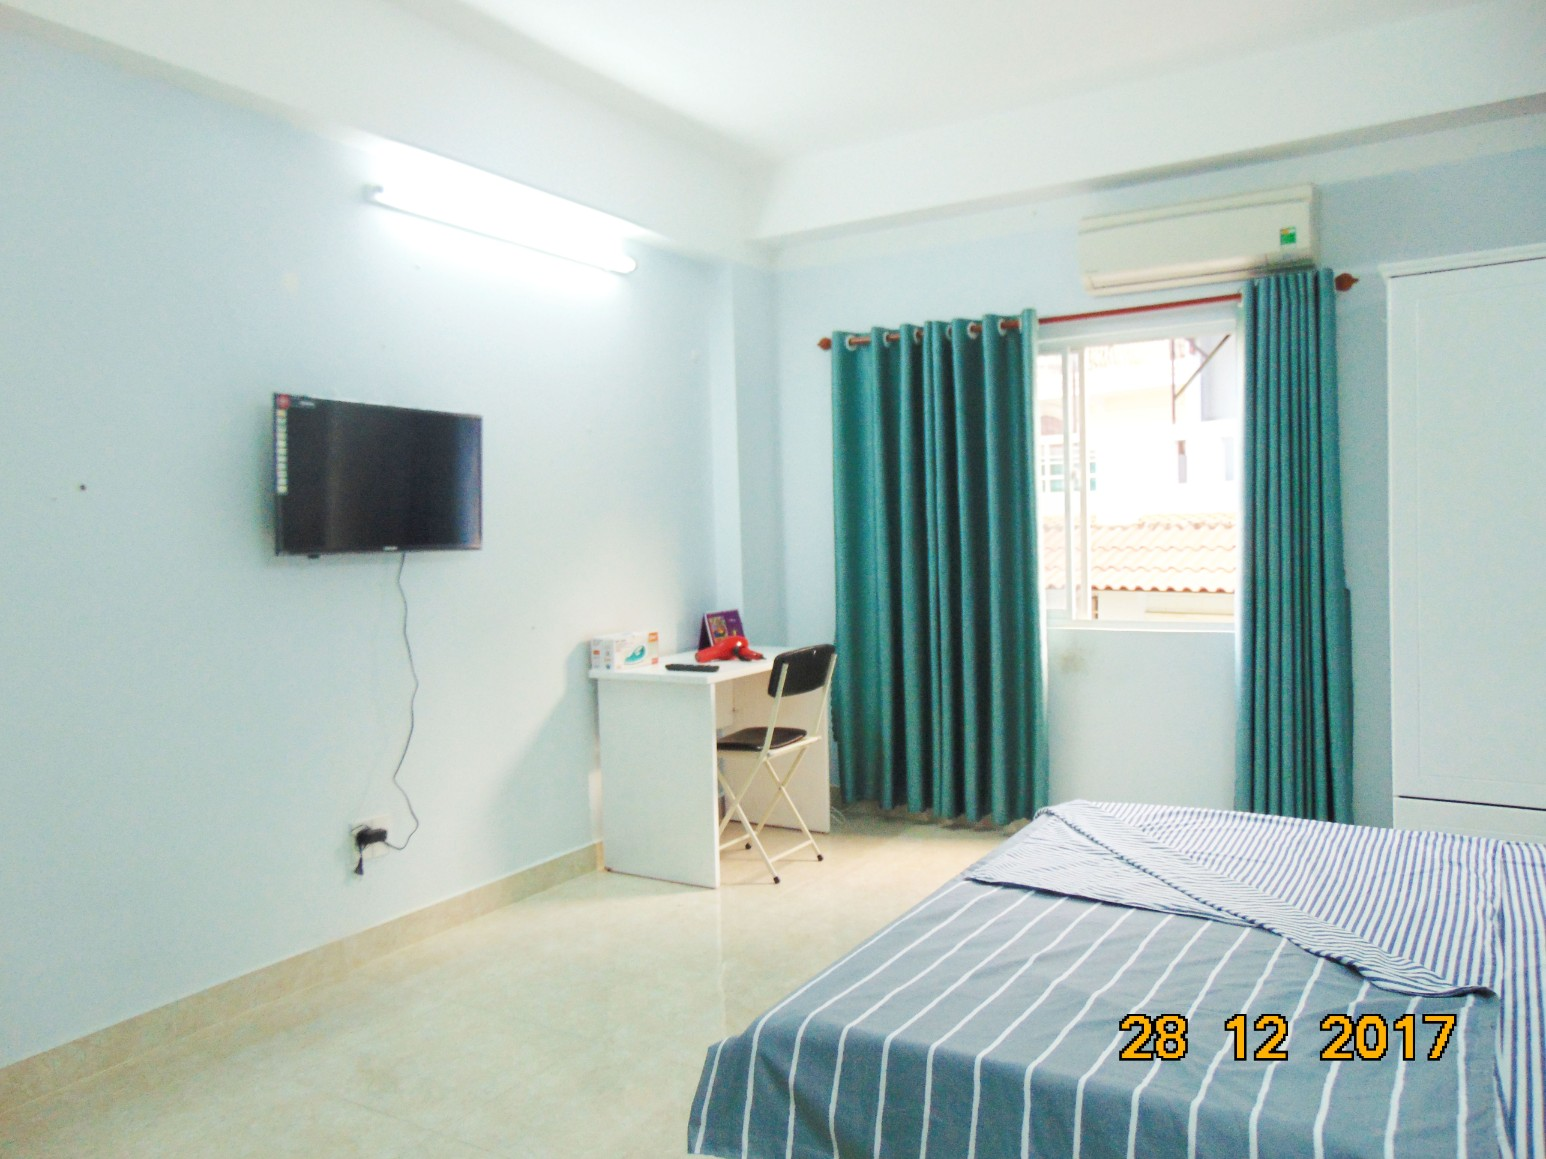 YT-STUDIO3-Fully furnished Studio Apartment, Cool Space, Window View